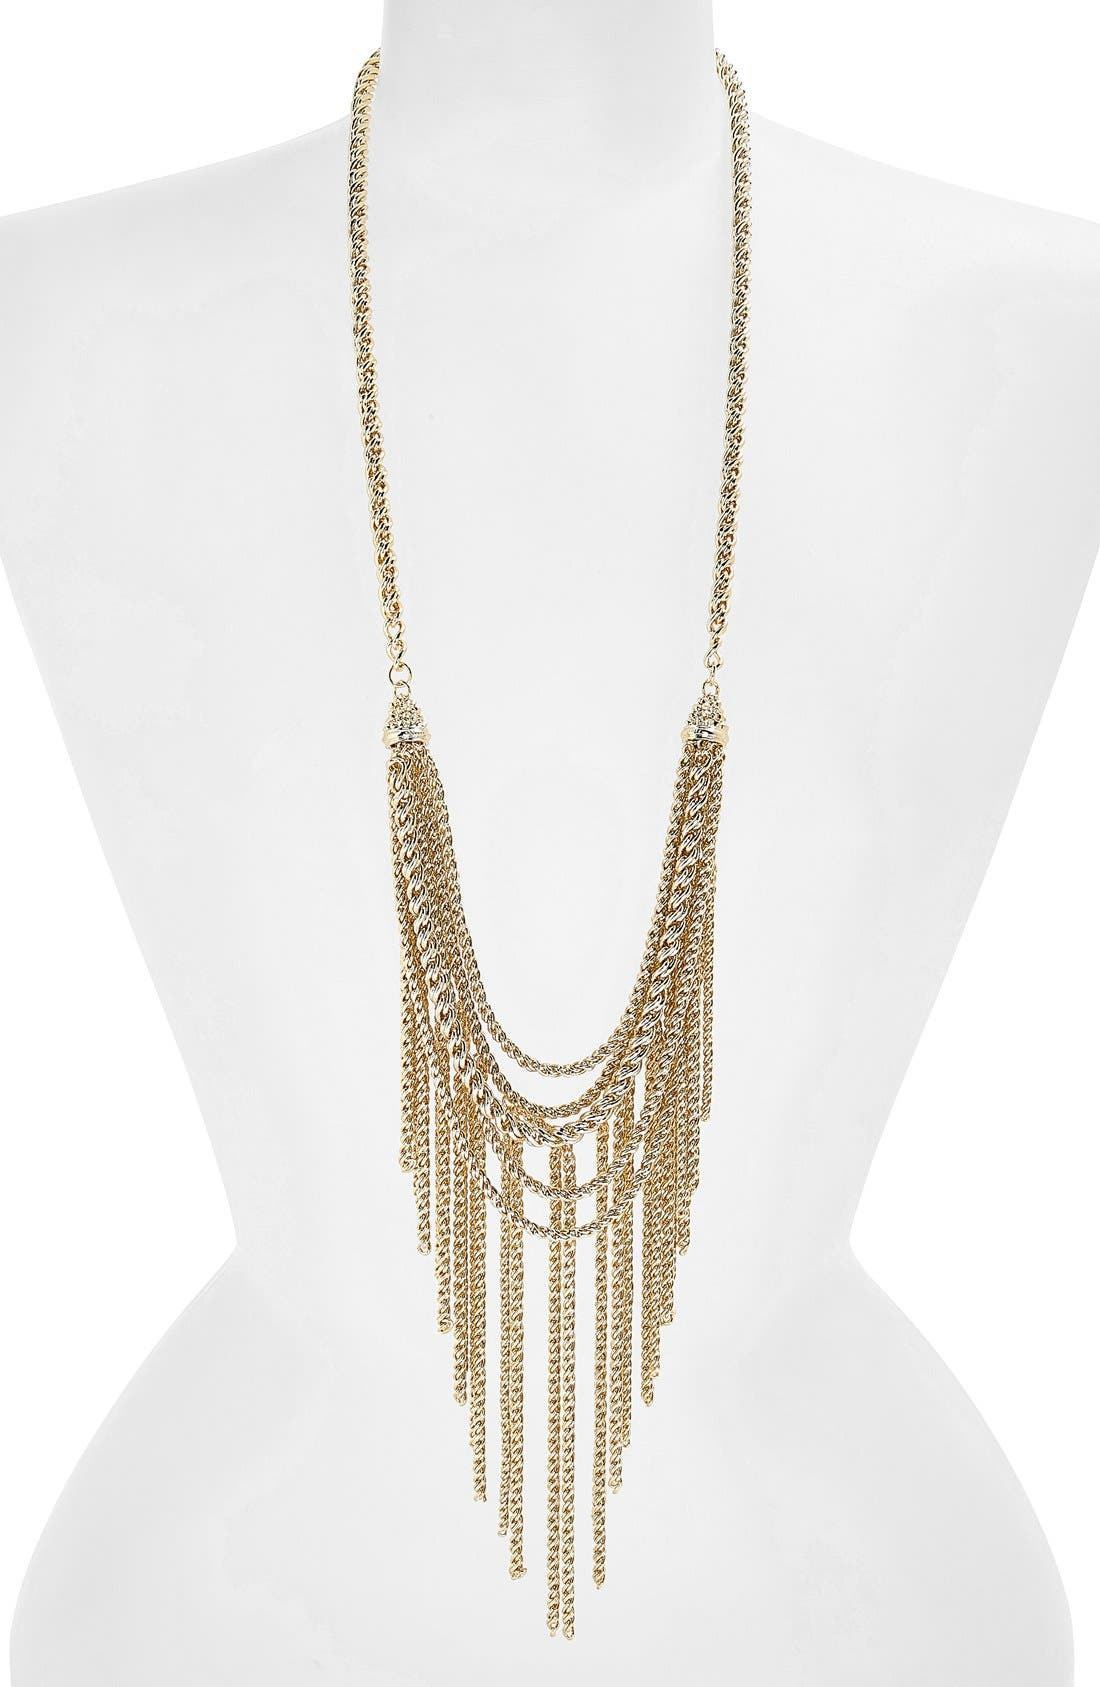 Alternate Image 1 Selected - Kendra Scott 'Landry' Long Chain Fringed Necklace